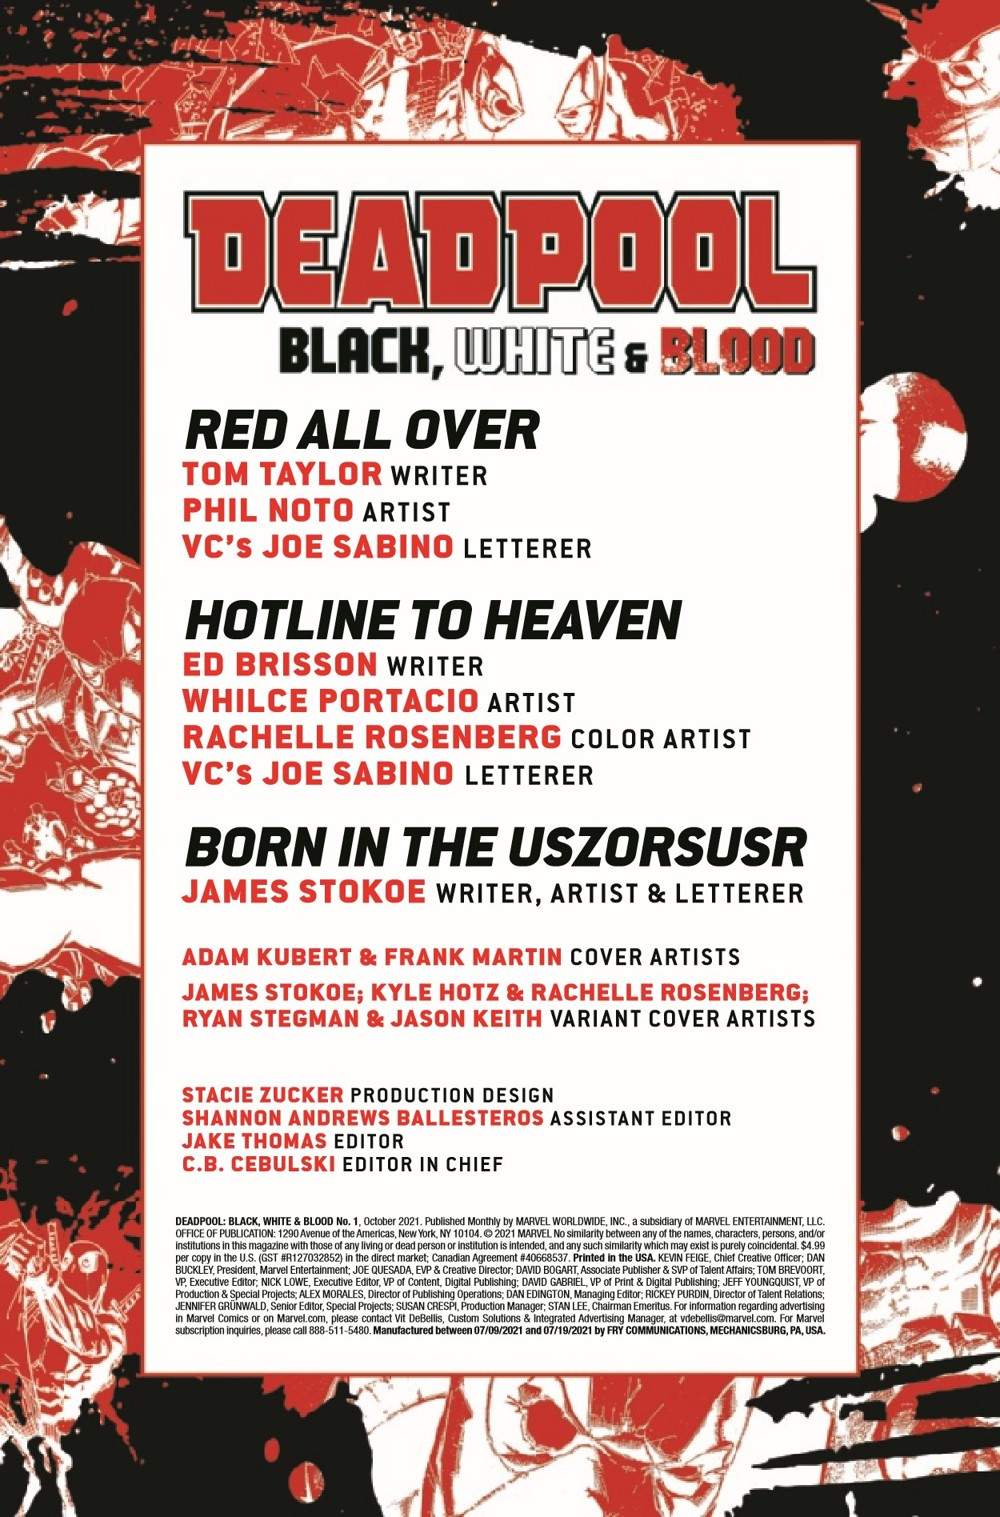 DPOOLBLKWHBL2021001_Preview-2 ComicList Previews: DEADPOOL BLACK WHITE AND BLOOD #1 (OF 4)